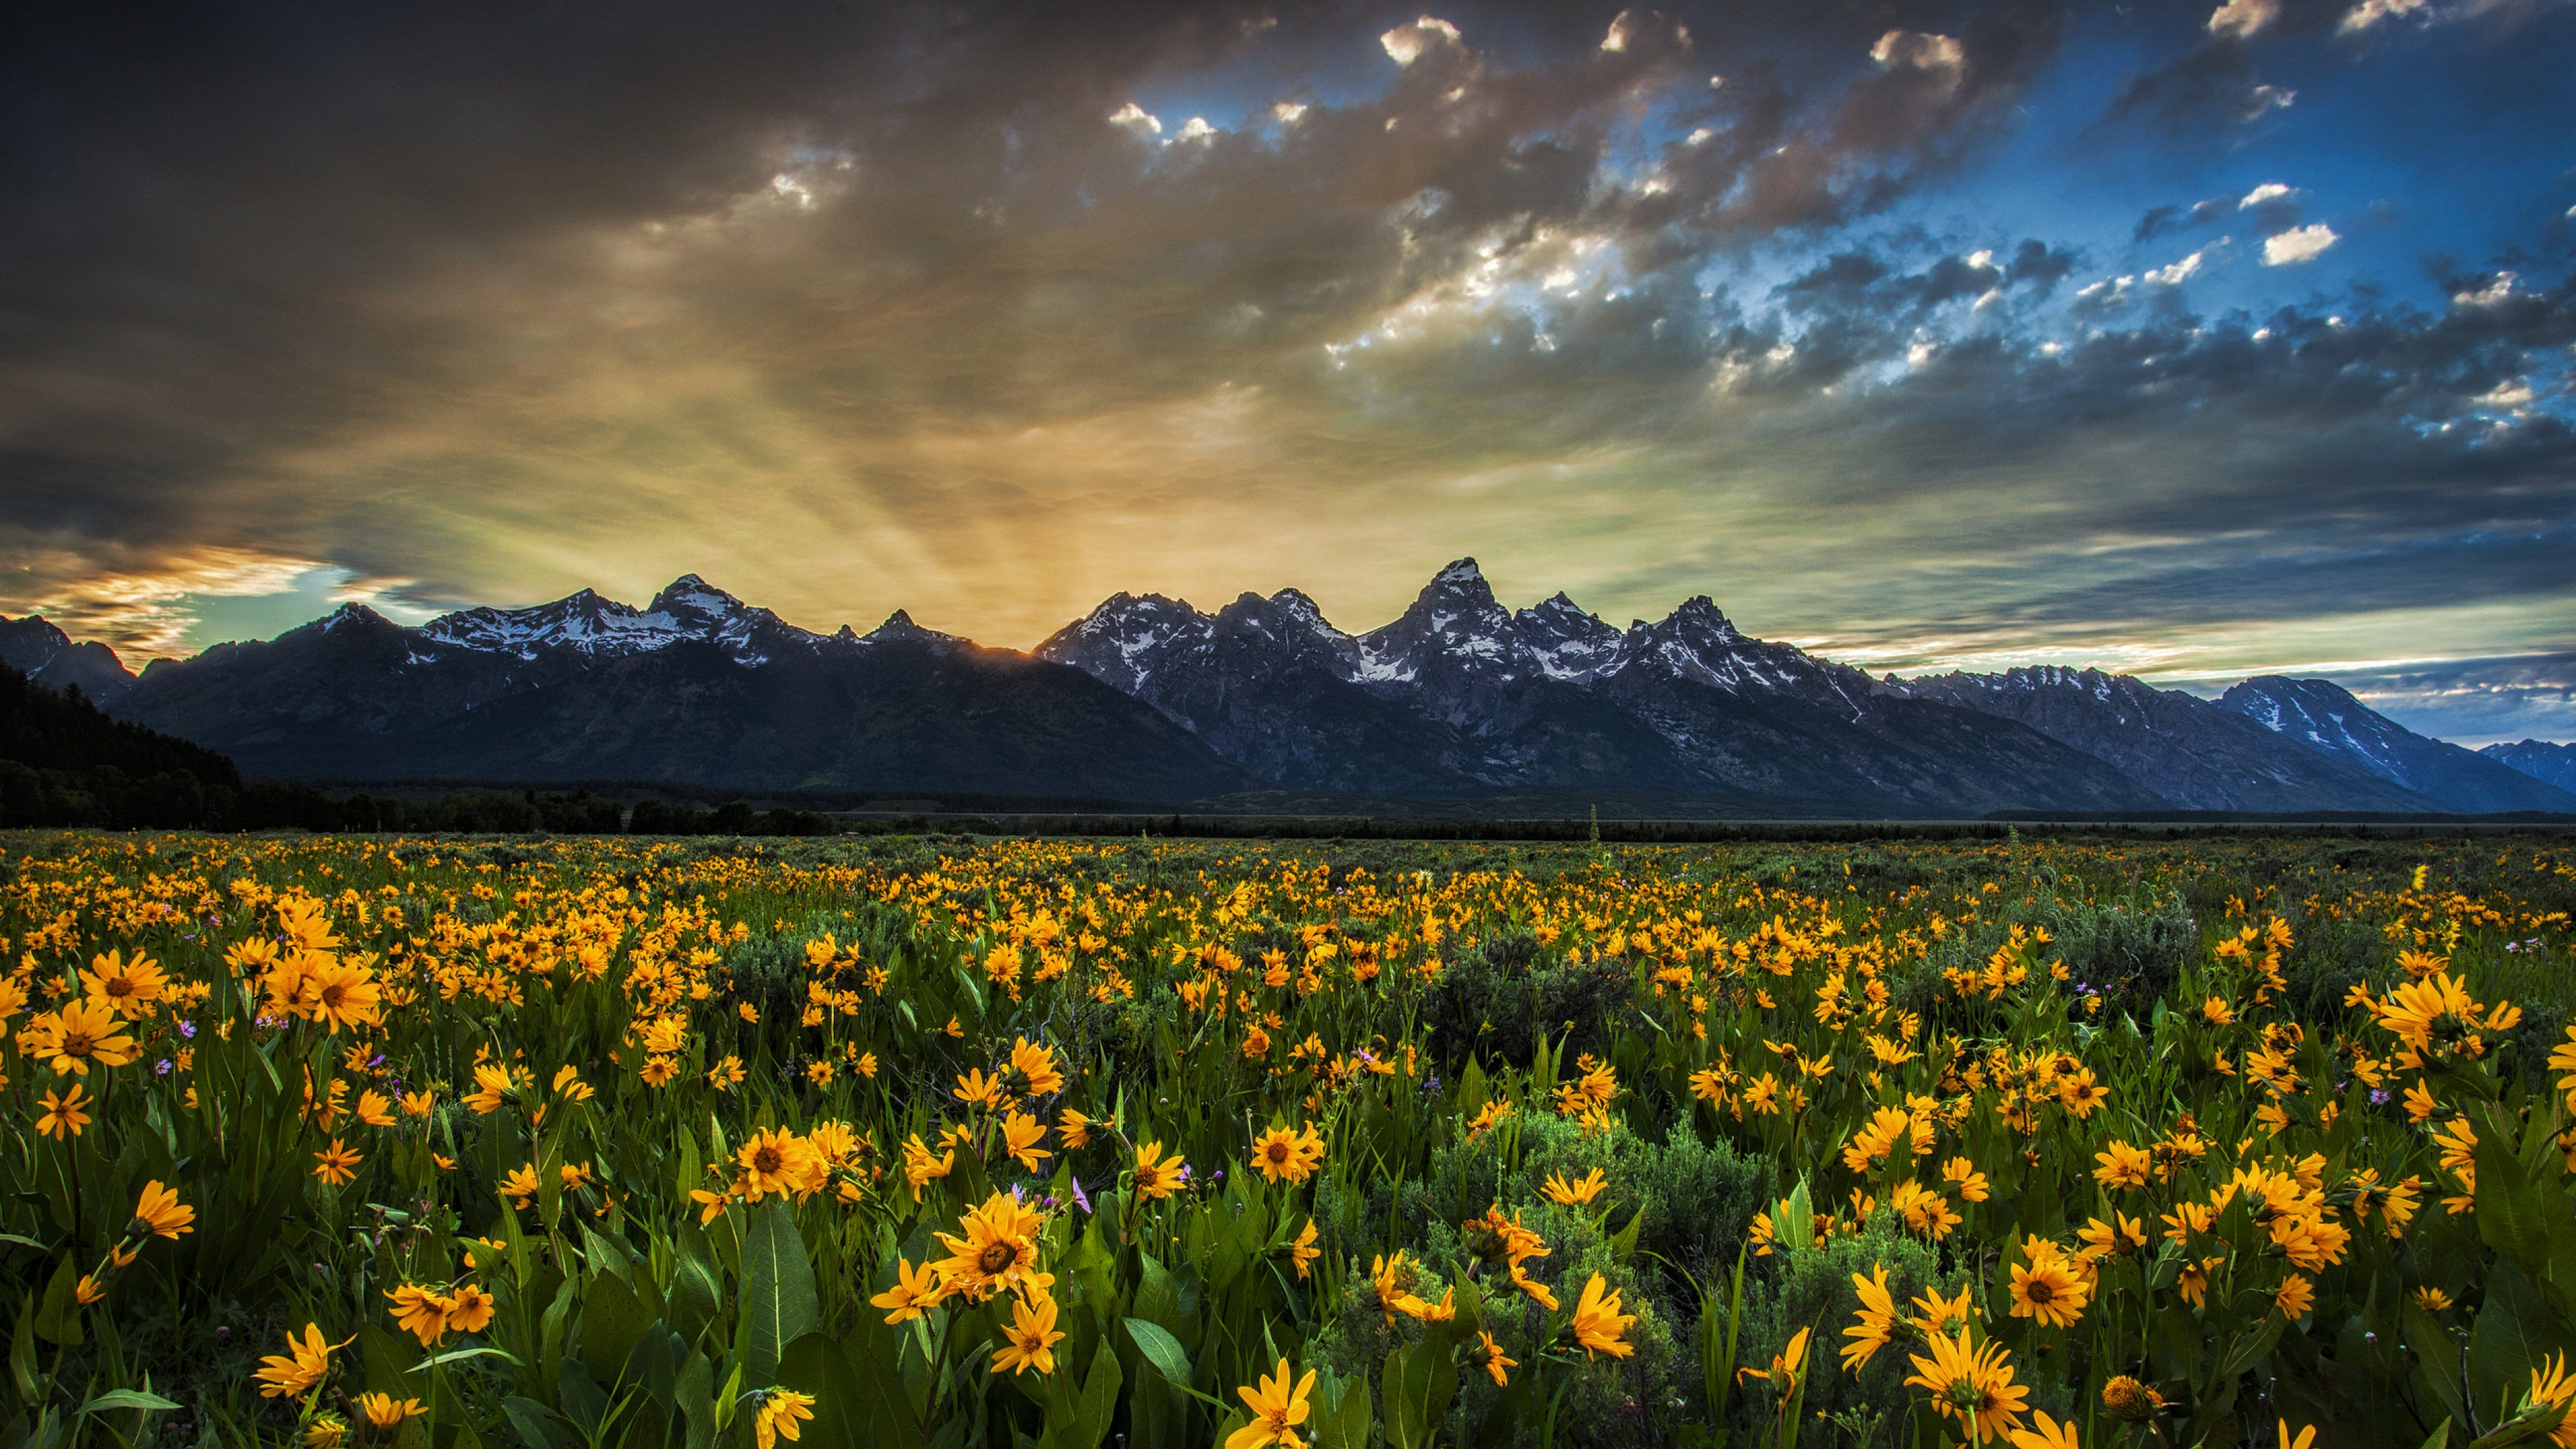 Field of yellow flowers with the sun setting behind snow-speckled mountains